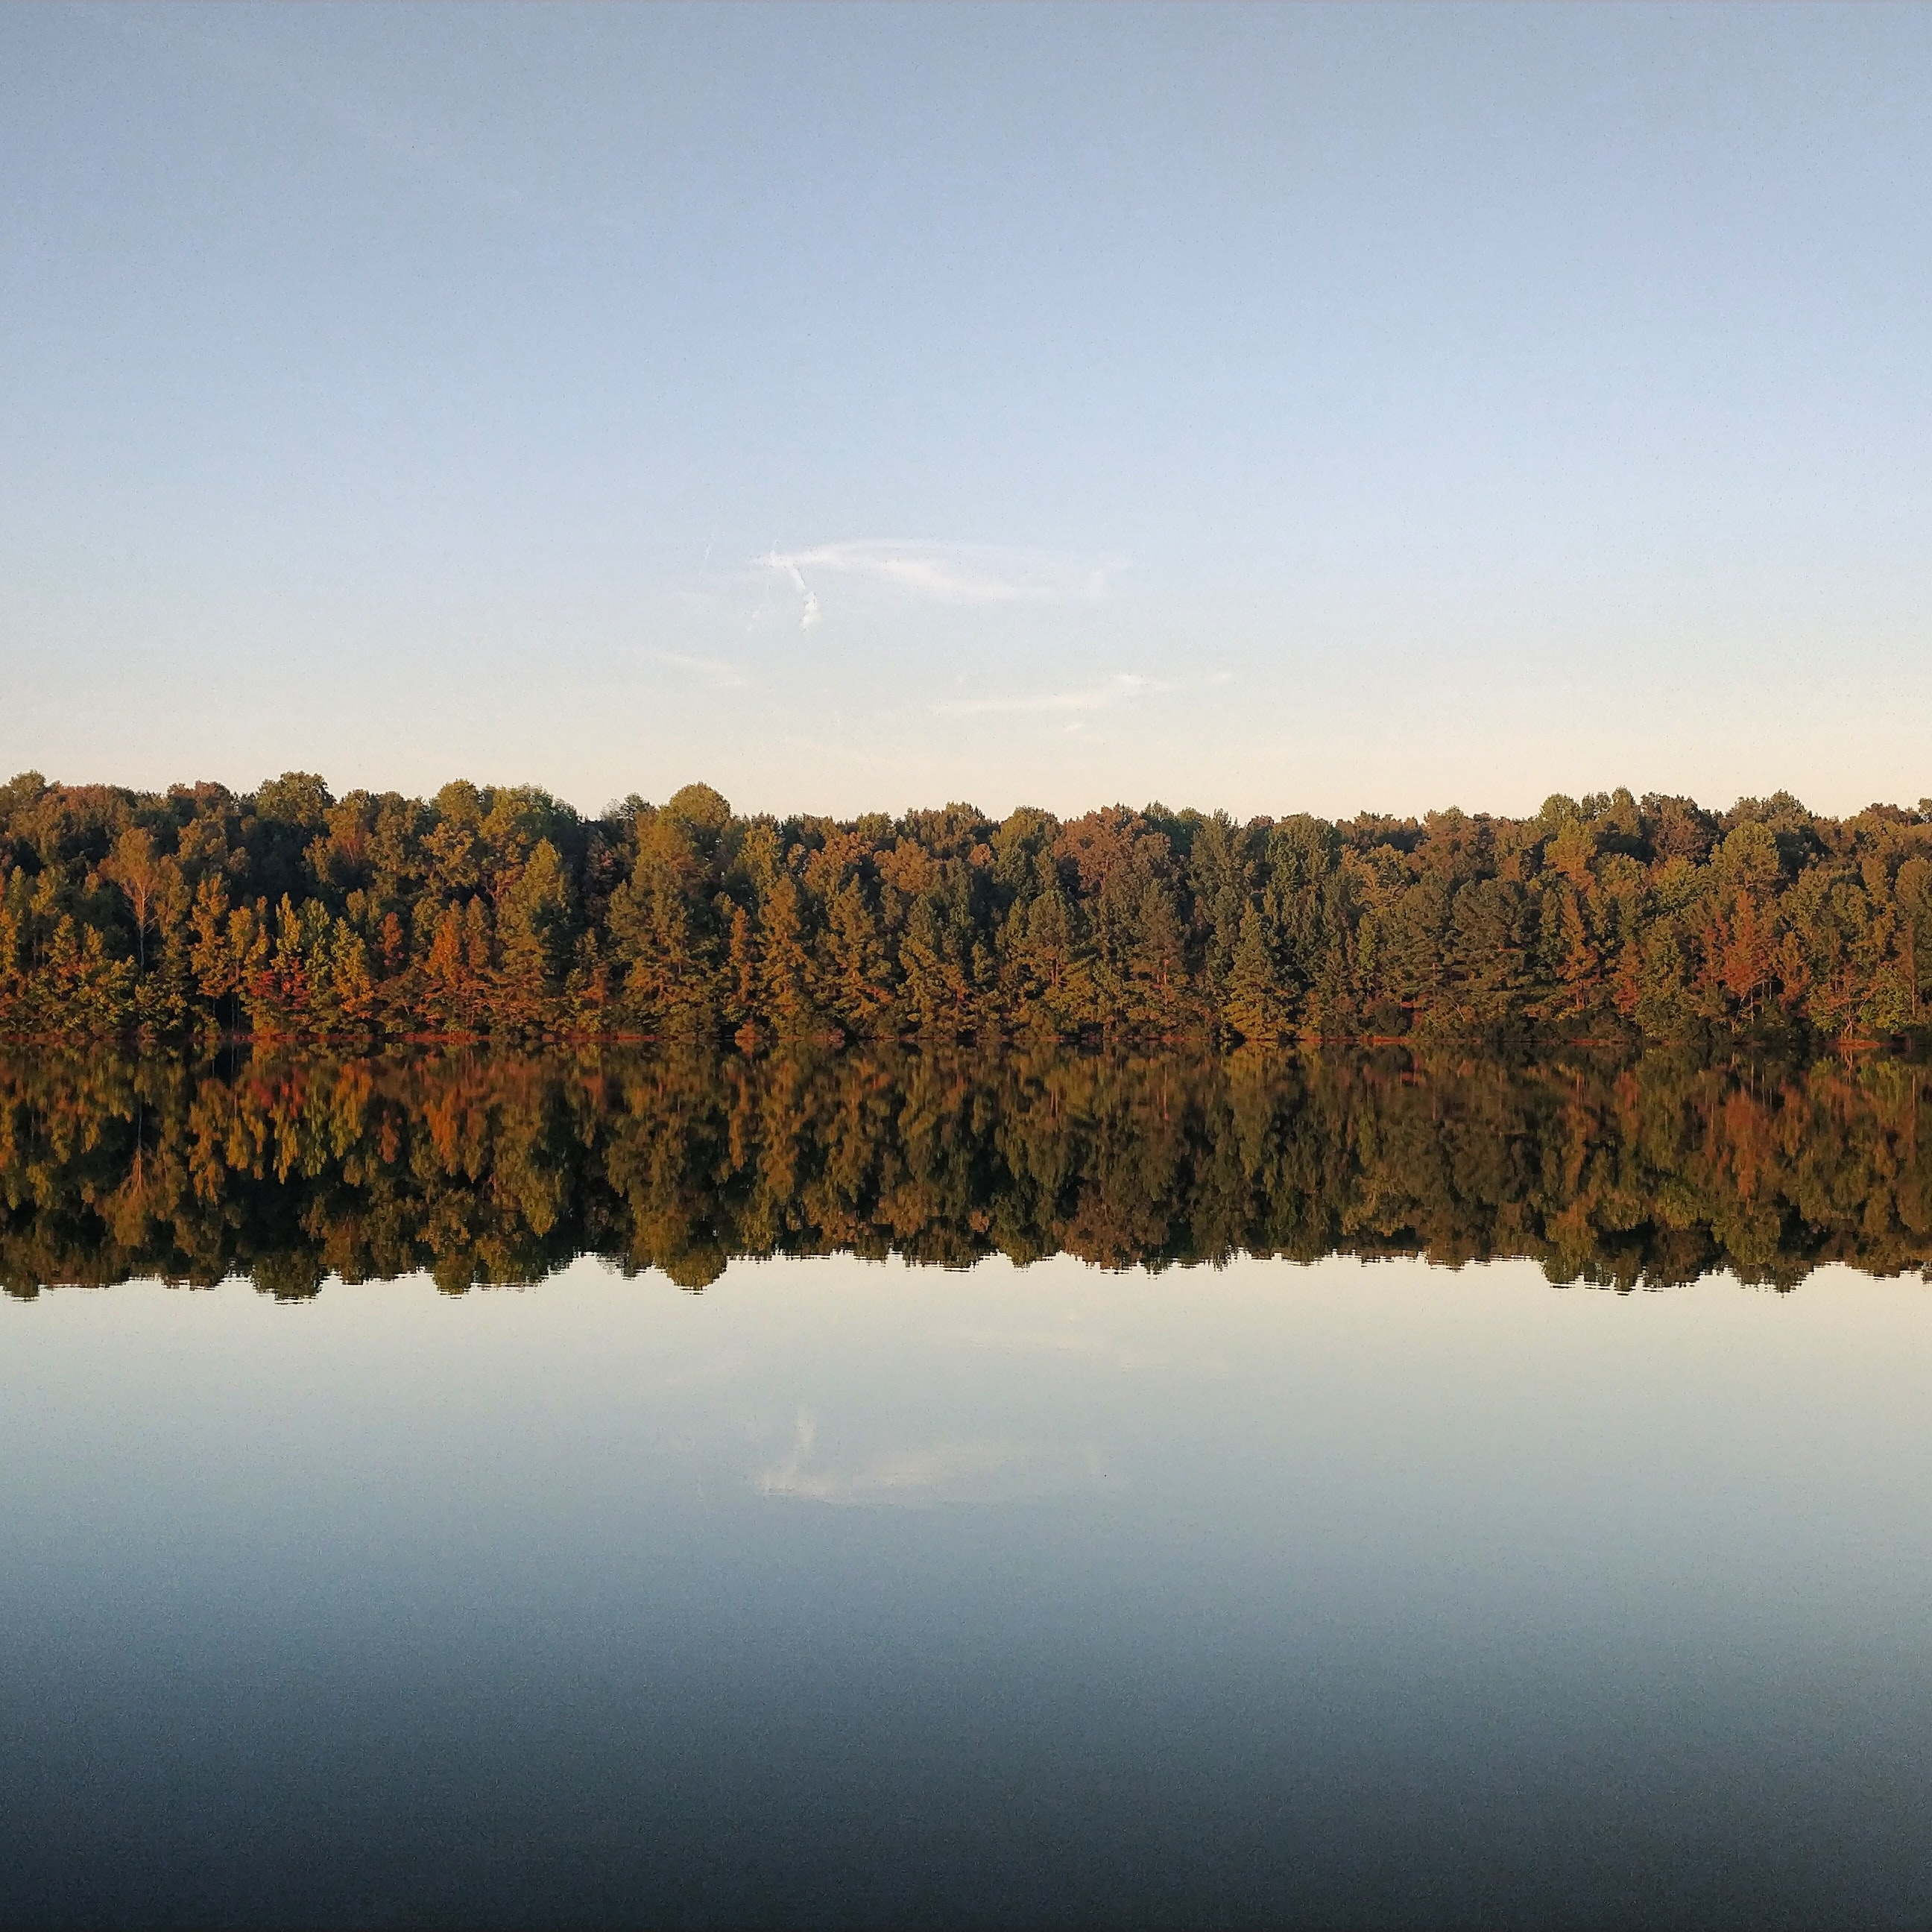 photo of trees and body of water during daytime